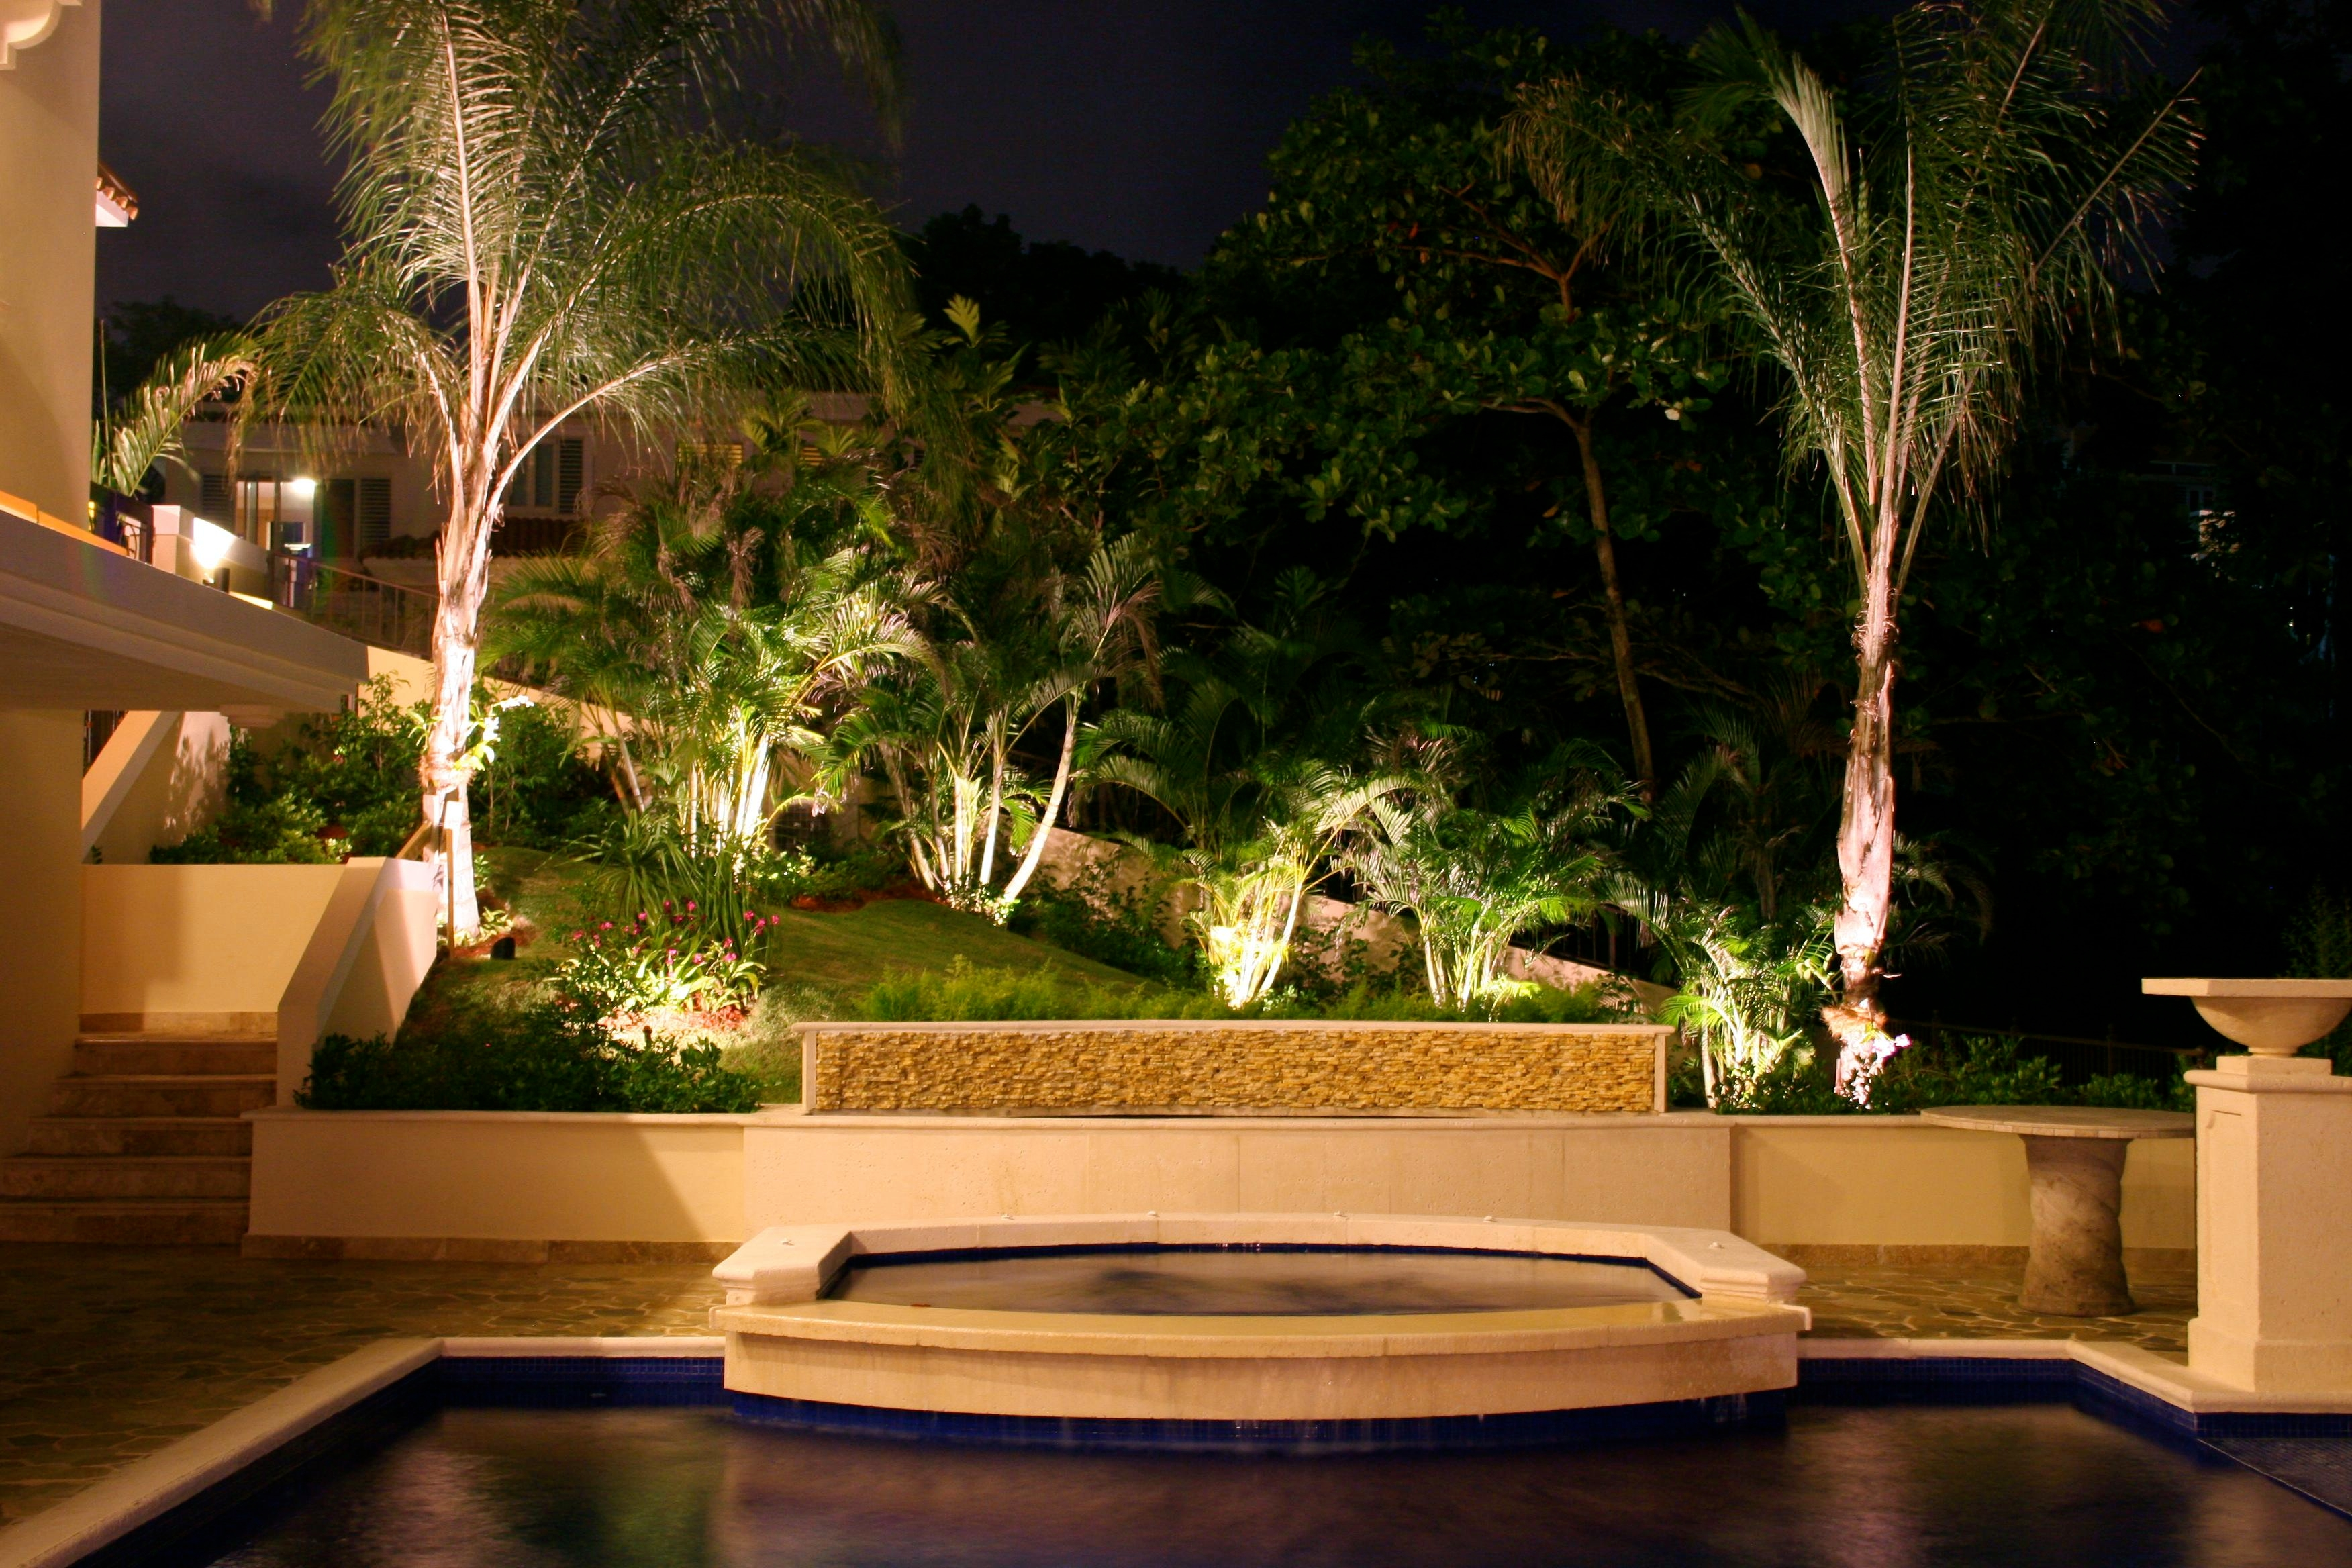 Outdoor lighting perspectives of clearwater tampa bay exterior outdoor lighting perspectives of clearwater tampa bay exterior lighting oldsmar fl 34677 aloadofball Choice Image